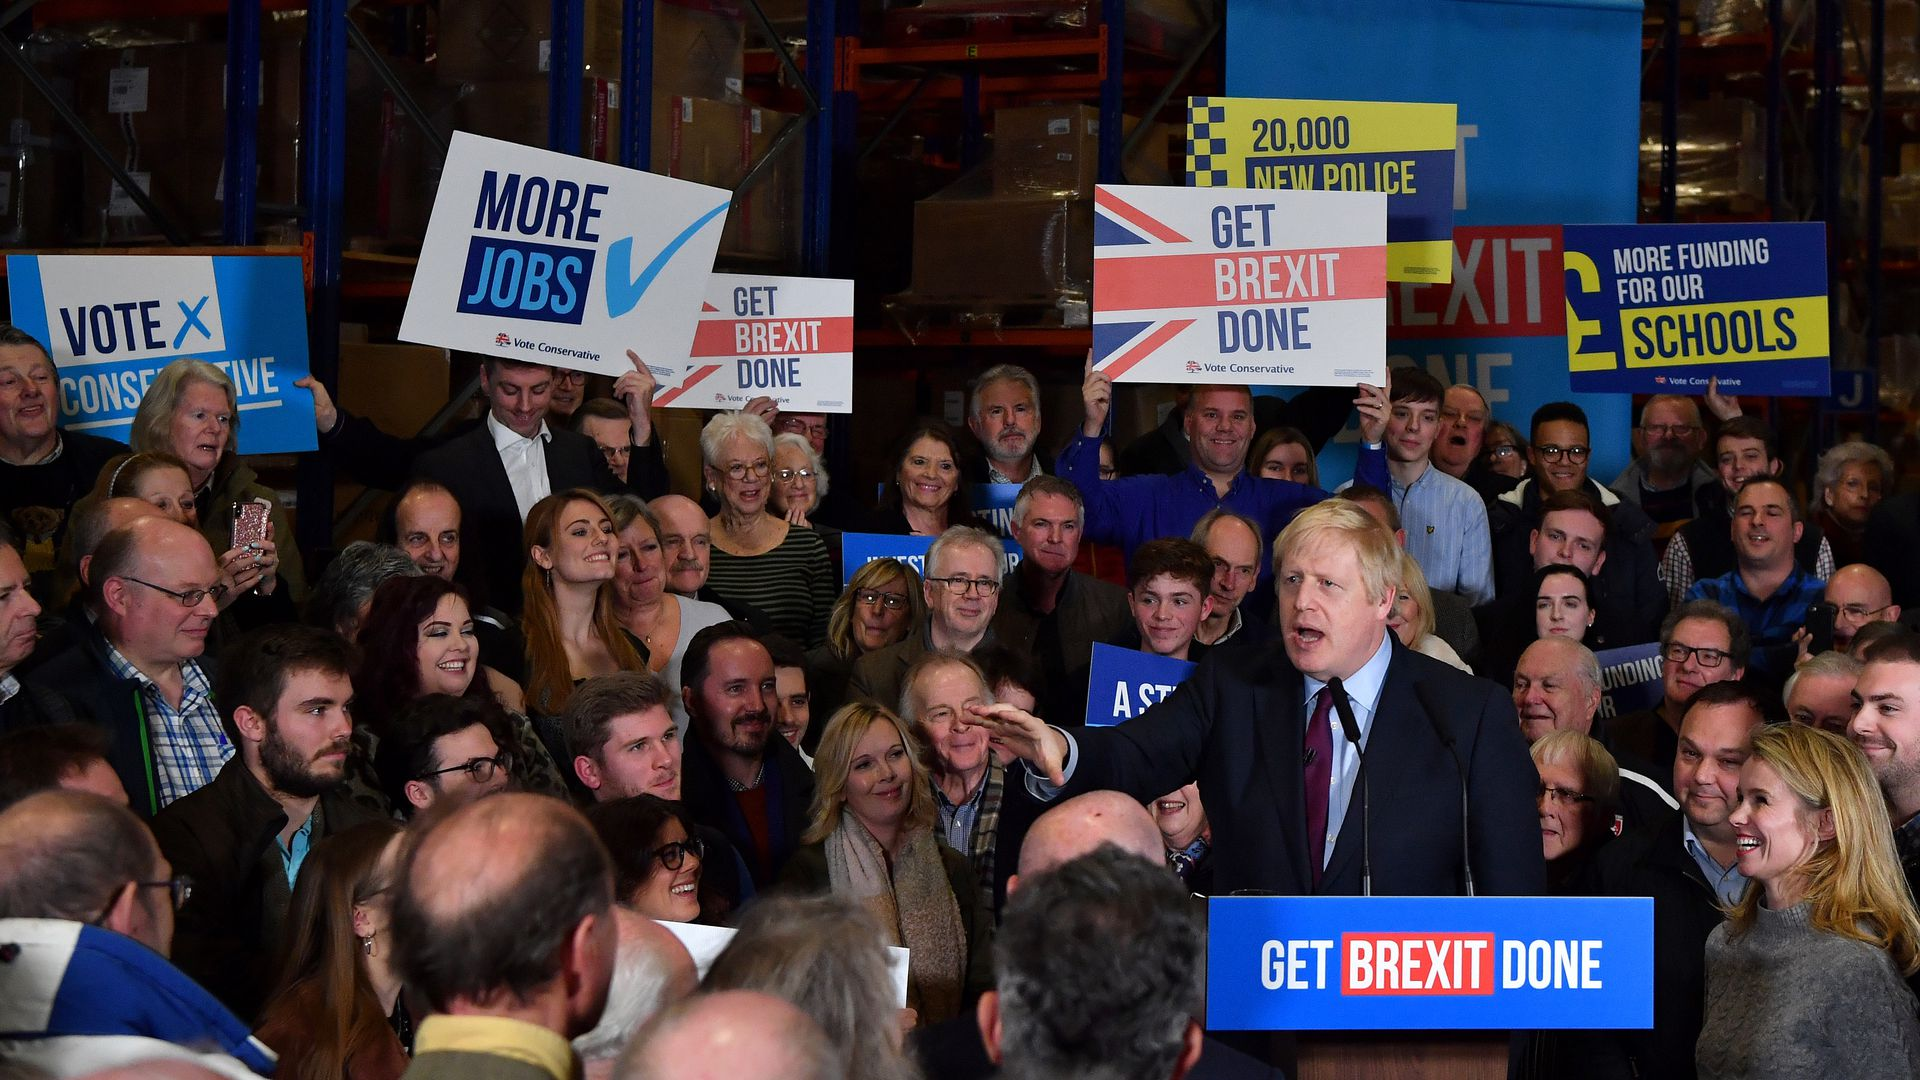 U.K. election: Polls put Boris Johnson on track for a pro-Brexit victory